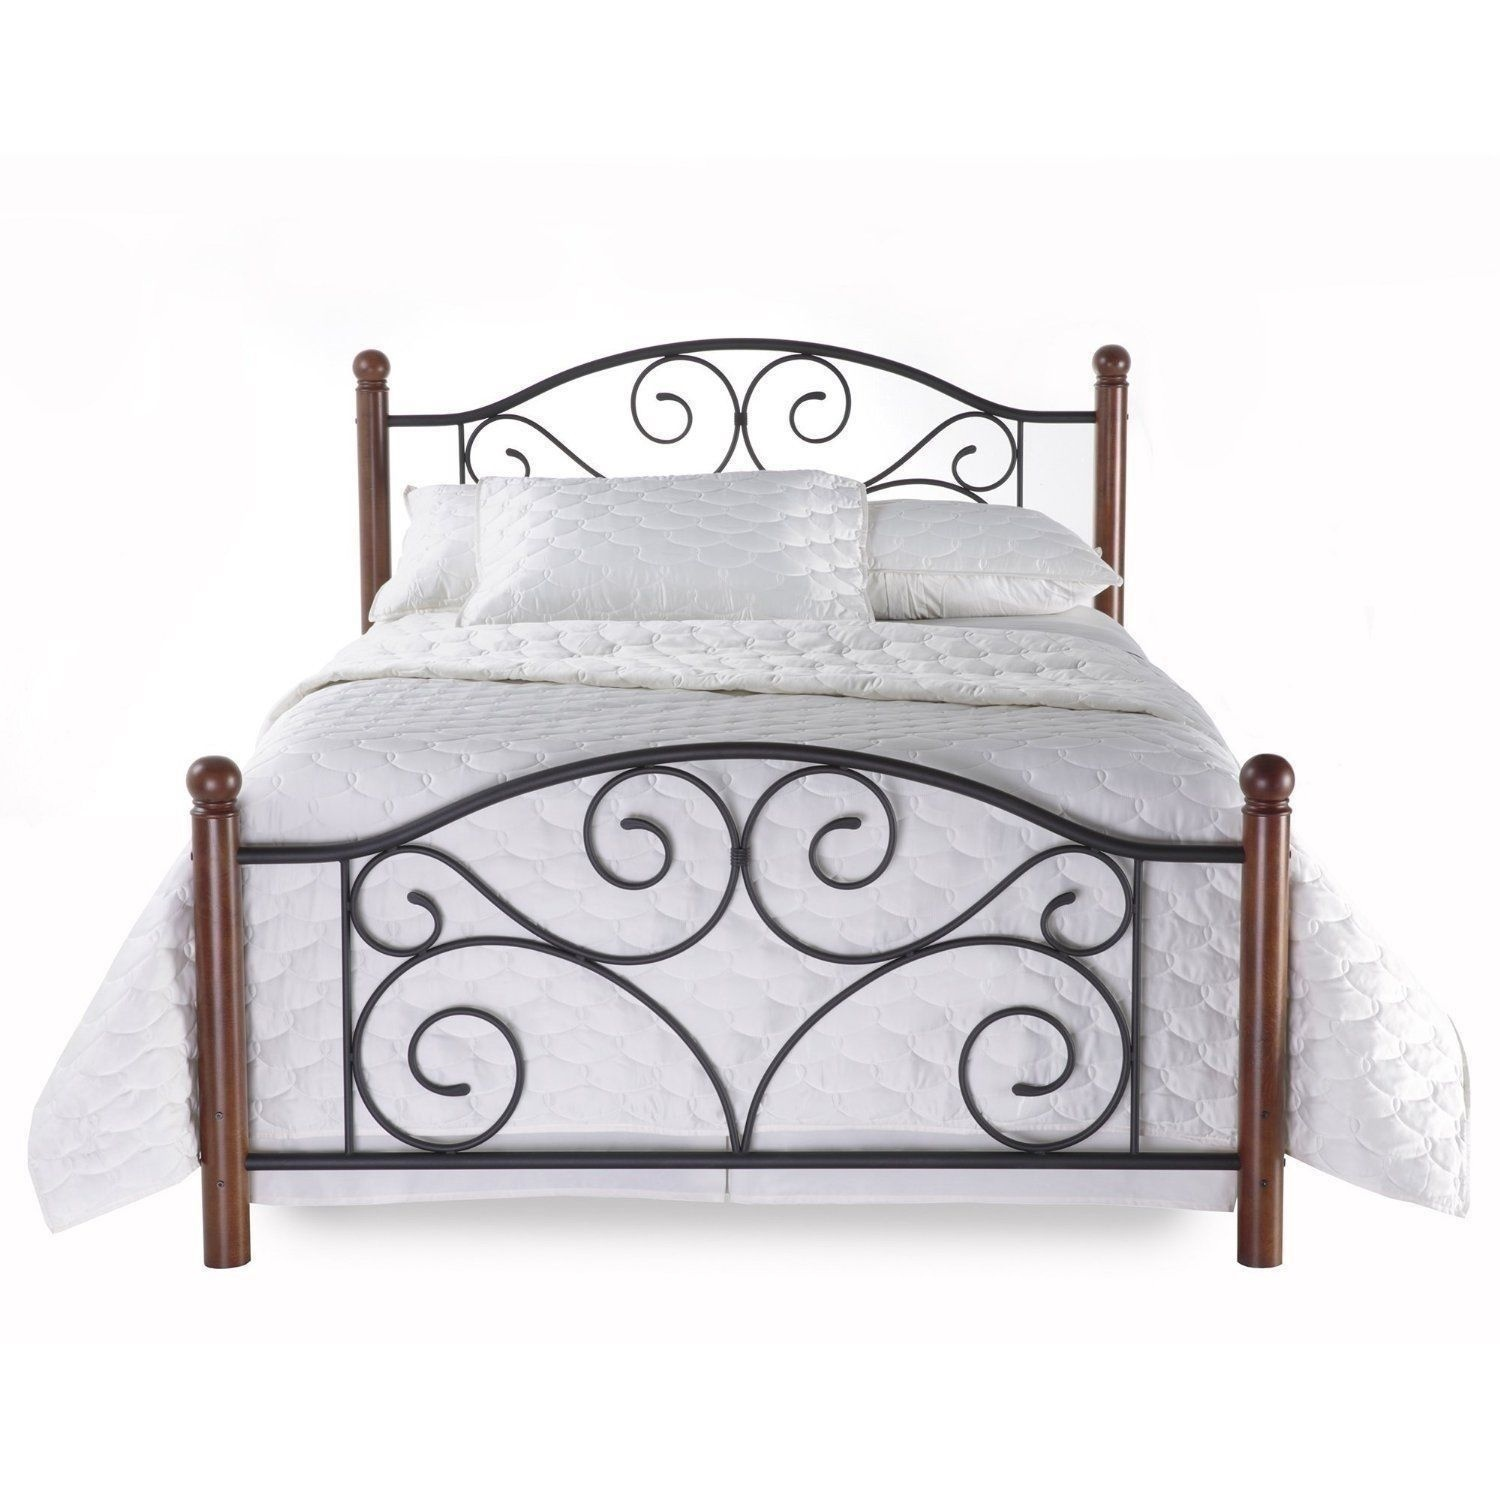 Queen Size Metal Bed Frame New Full Queen King Size Metal Wood Mattress Bed Frame